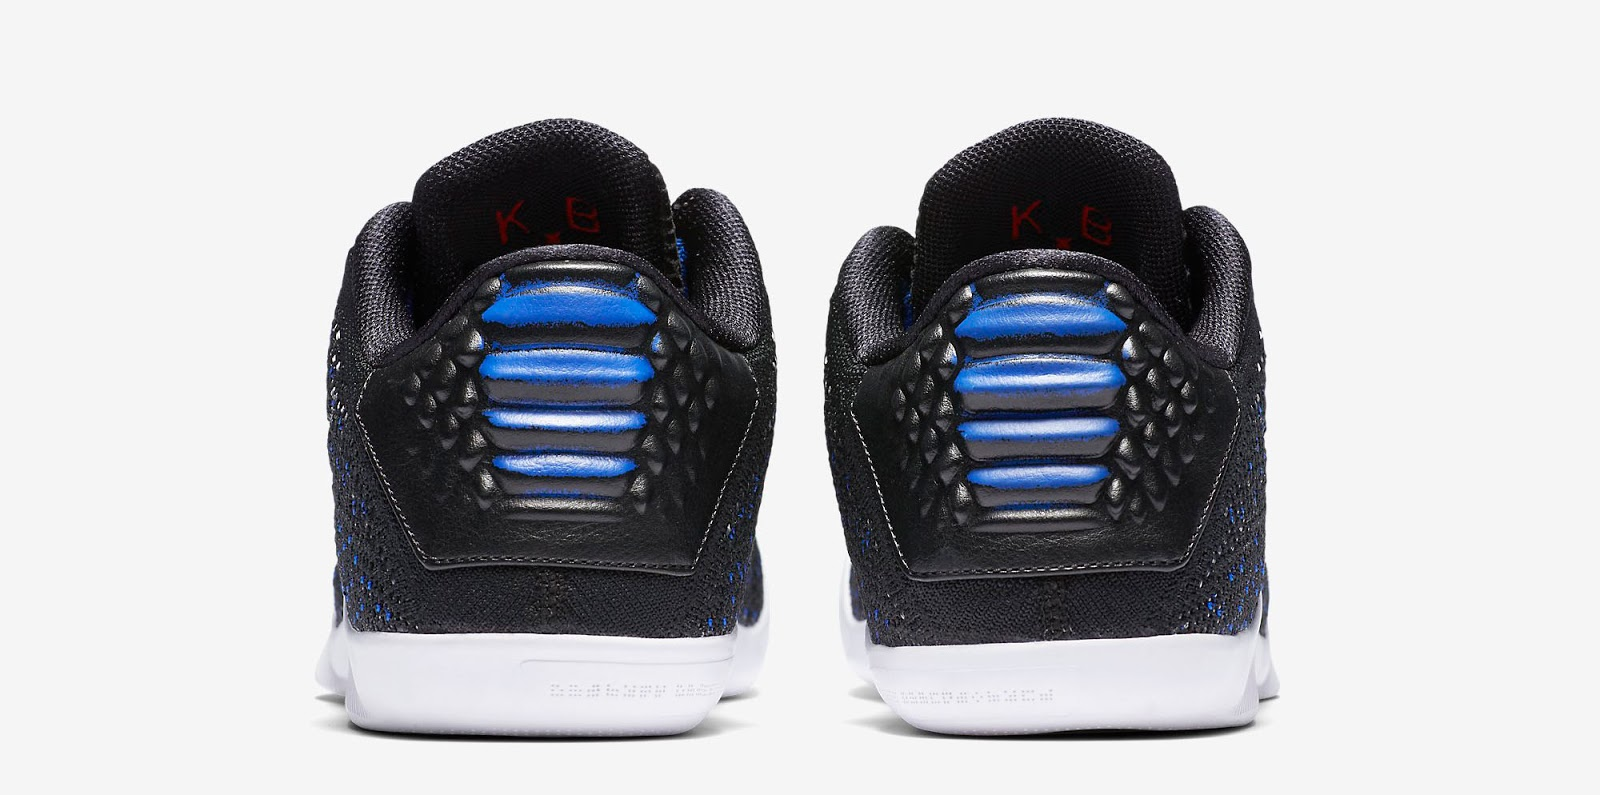 a0c942ca3c37 ajordanxi Your  1 Source For Sneaker Release Dates  Nike Kobe 11 Elite Low